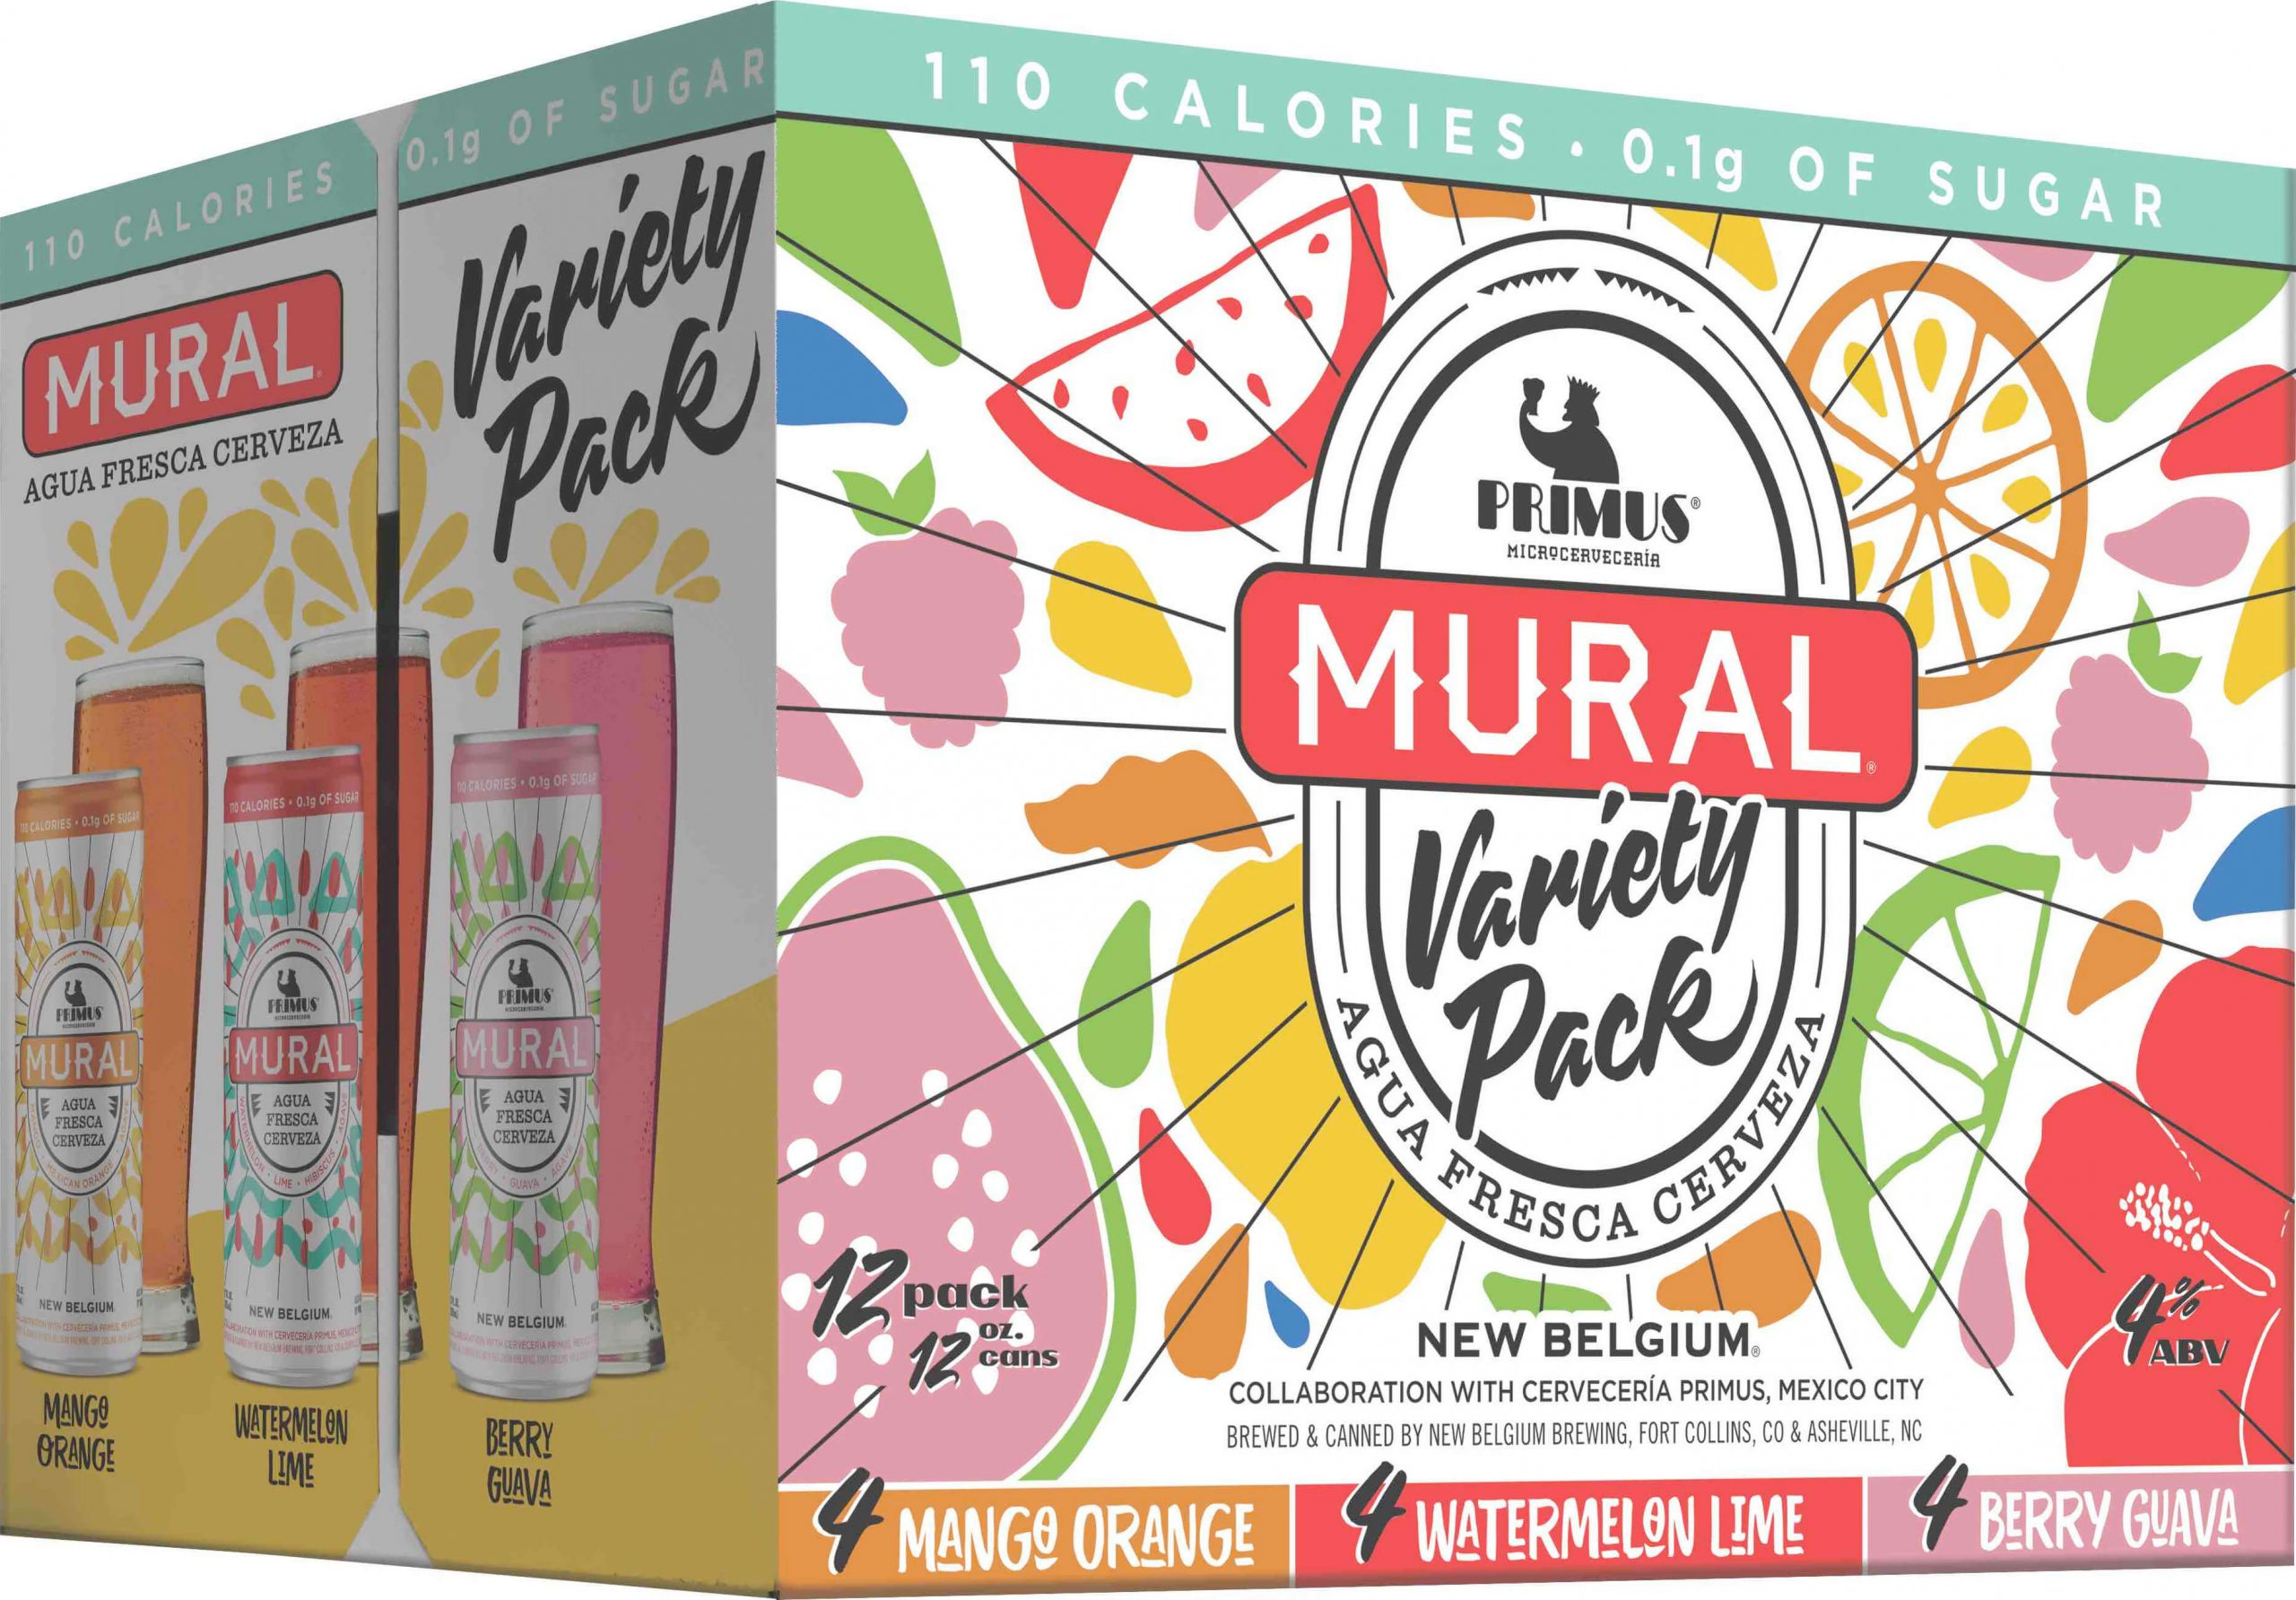 Packaging design for 12 packs of 12 oz. slim cans of the Mural Agua Fresca Cerveza Variety Pack by New Belgium Brewing Company and Cervecería Primus